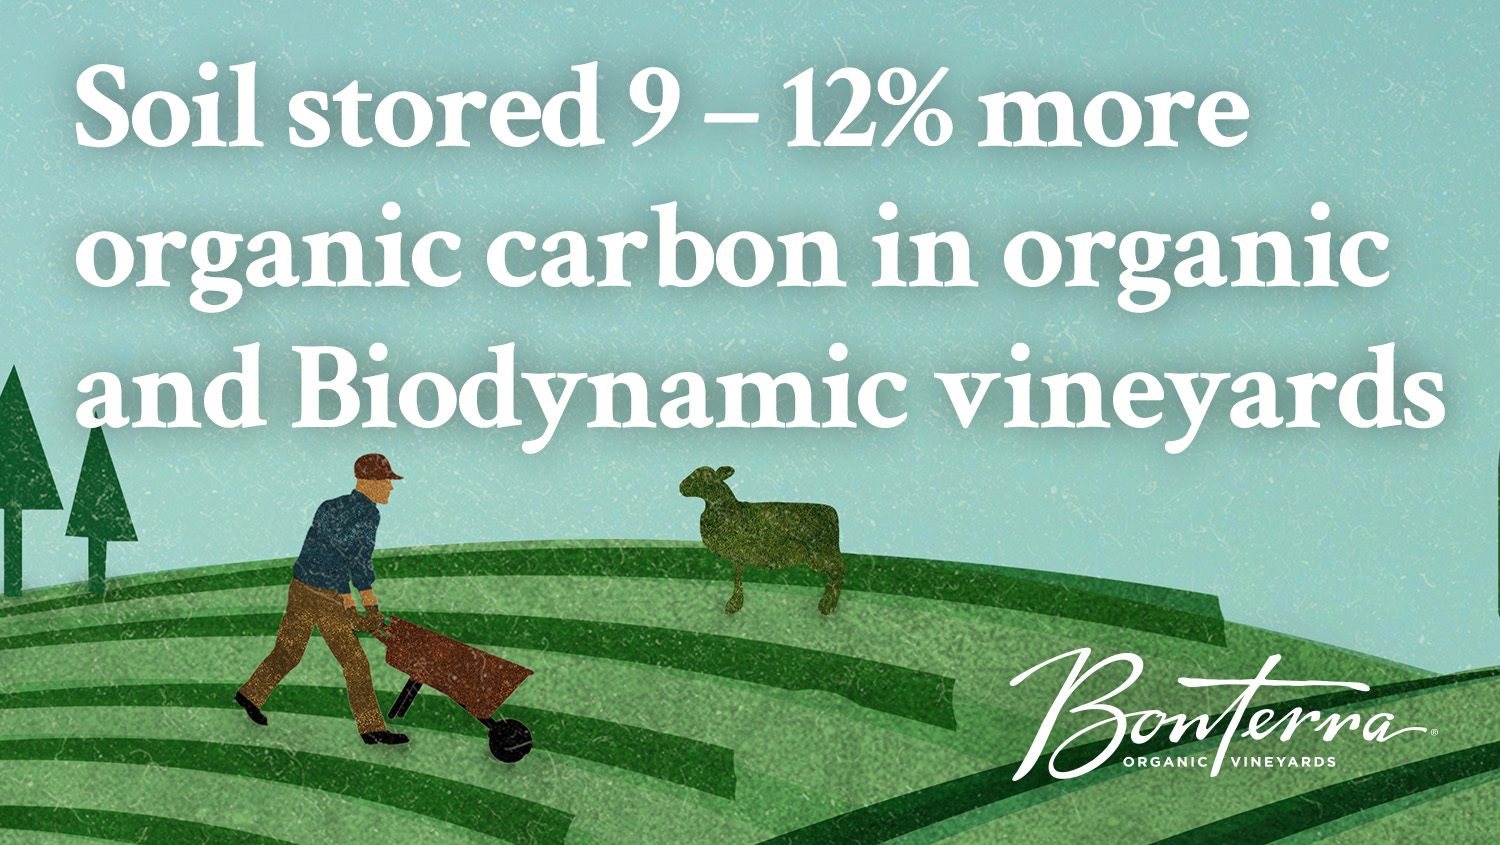 Data from Bonterra's study indicate that organic and Biodynamic vineyards store more soil organic carbon (SOC), a key element in keeping earth's carbon cycle in balance.